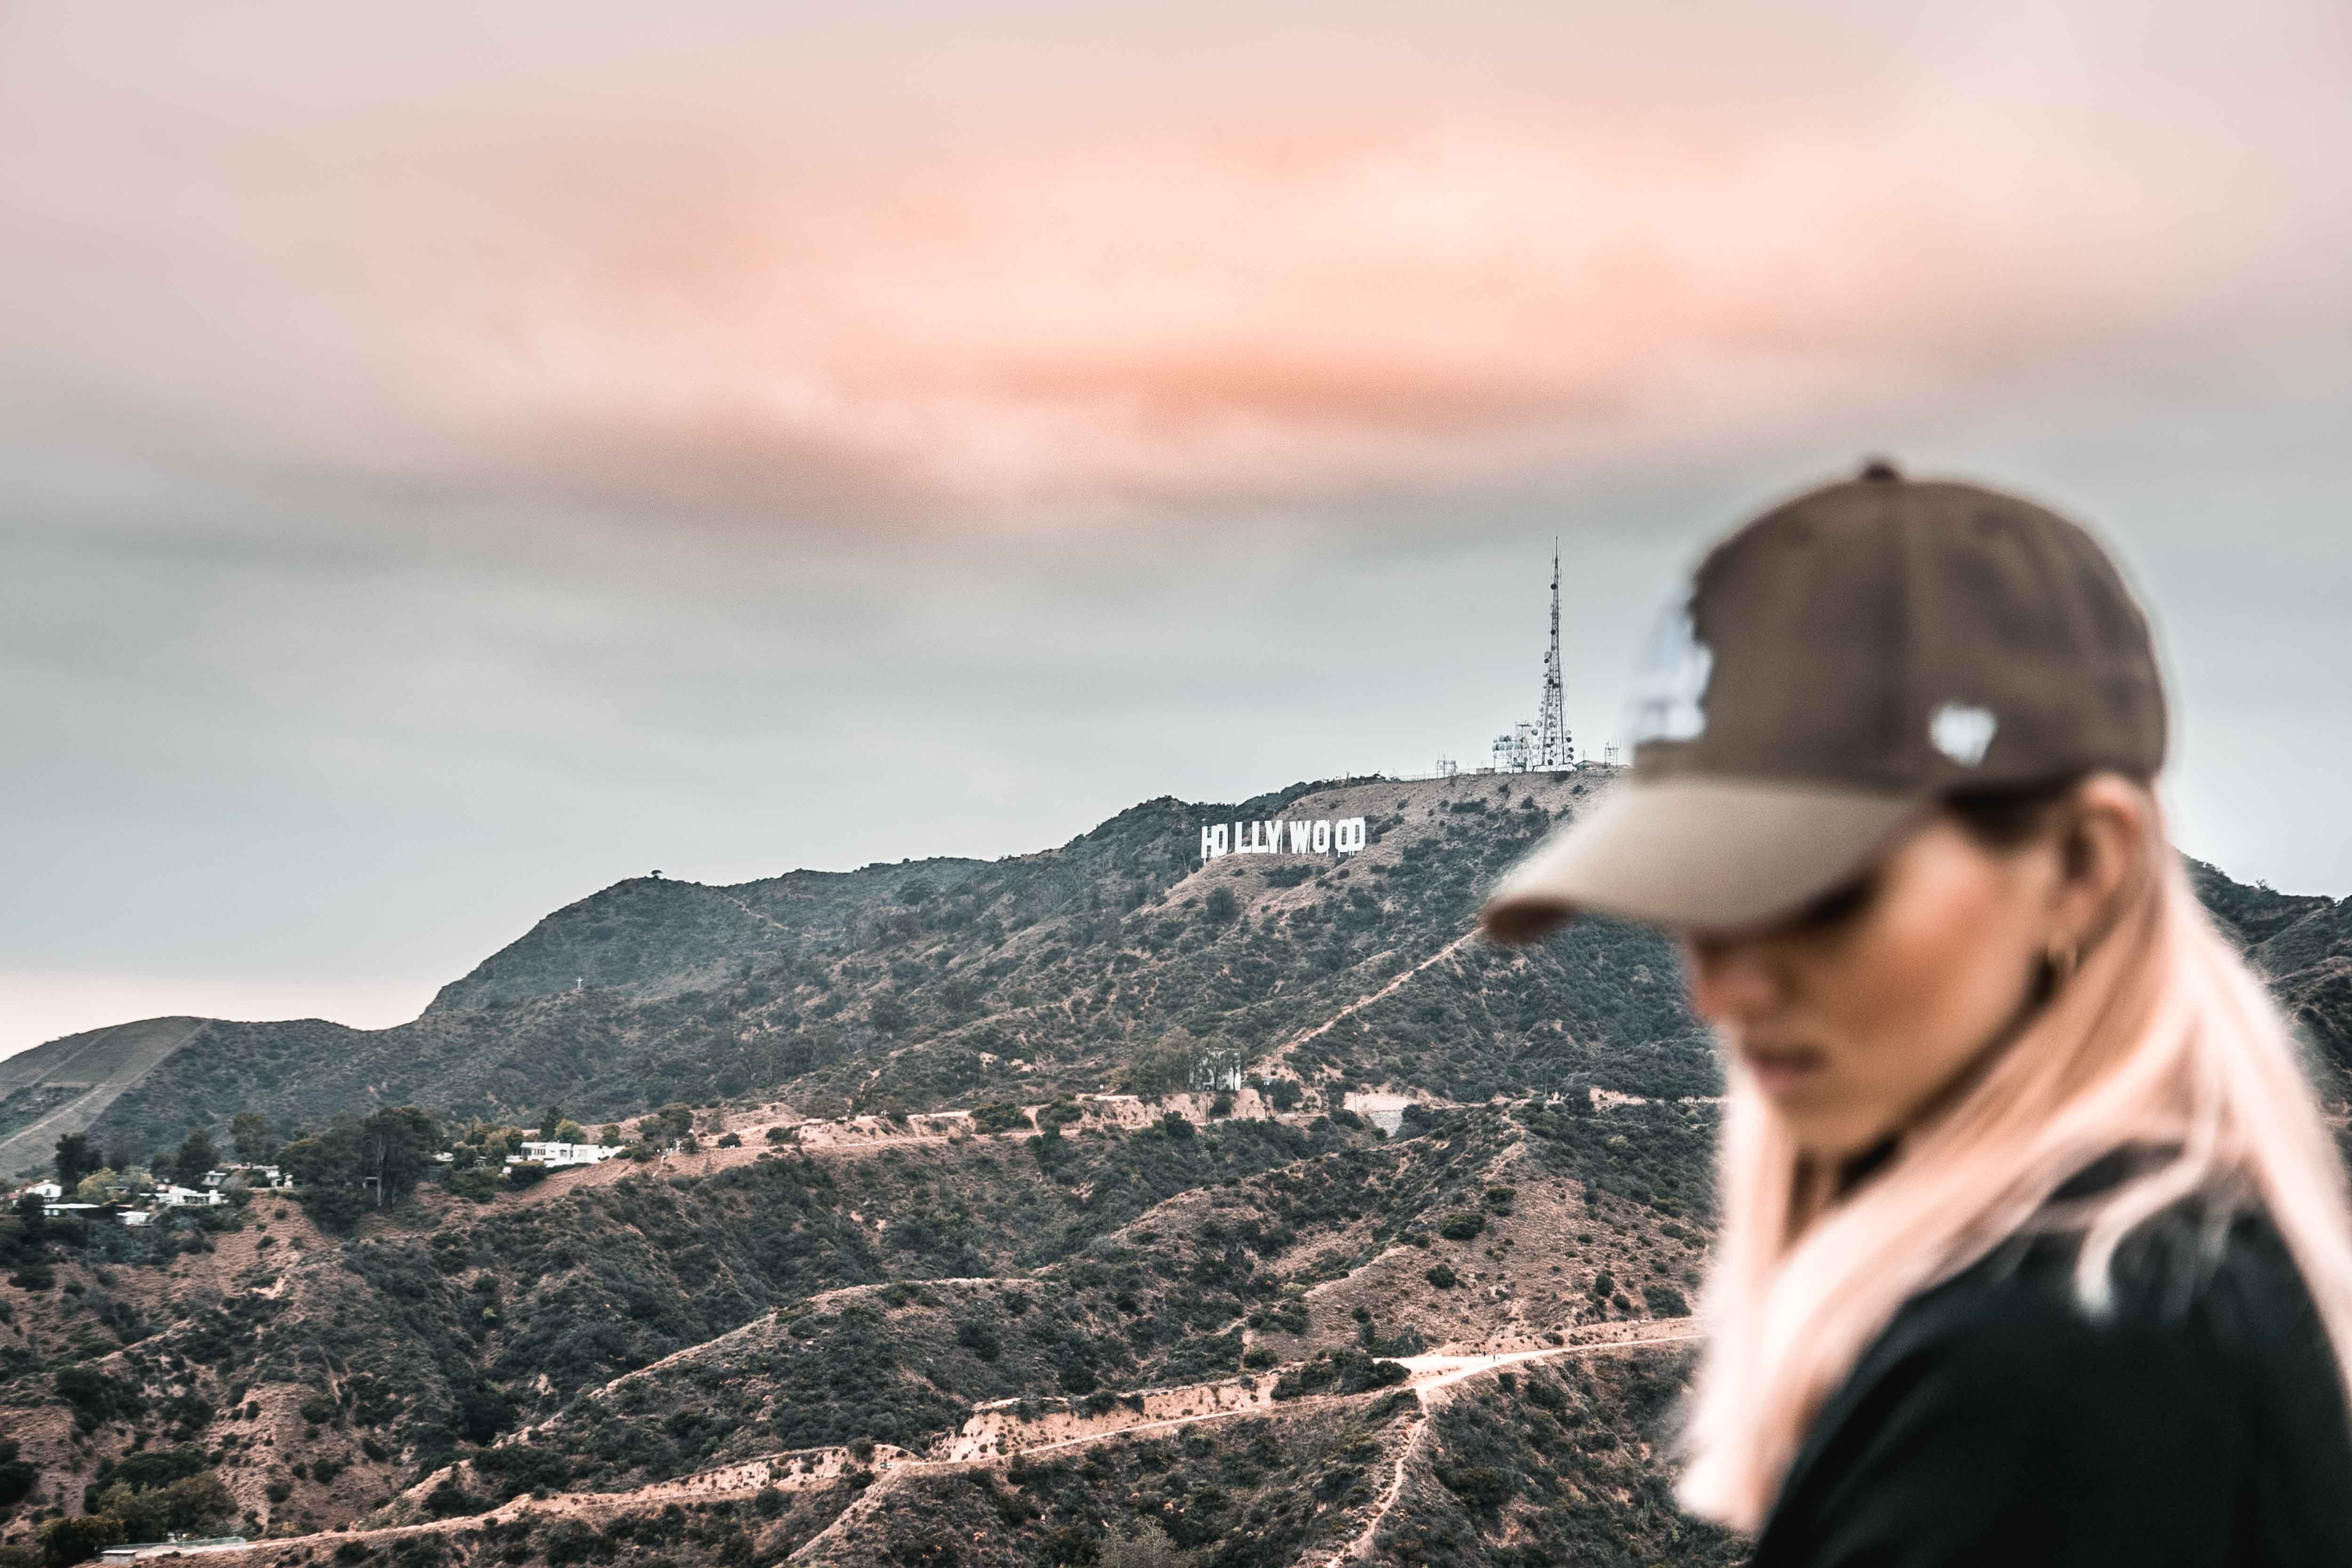 Los Angeles: Hollywood Sign Photo Spot